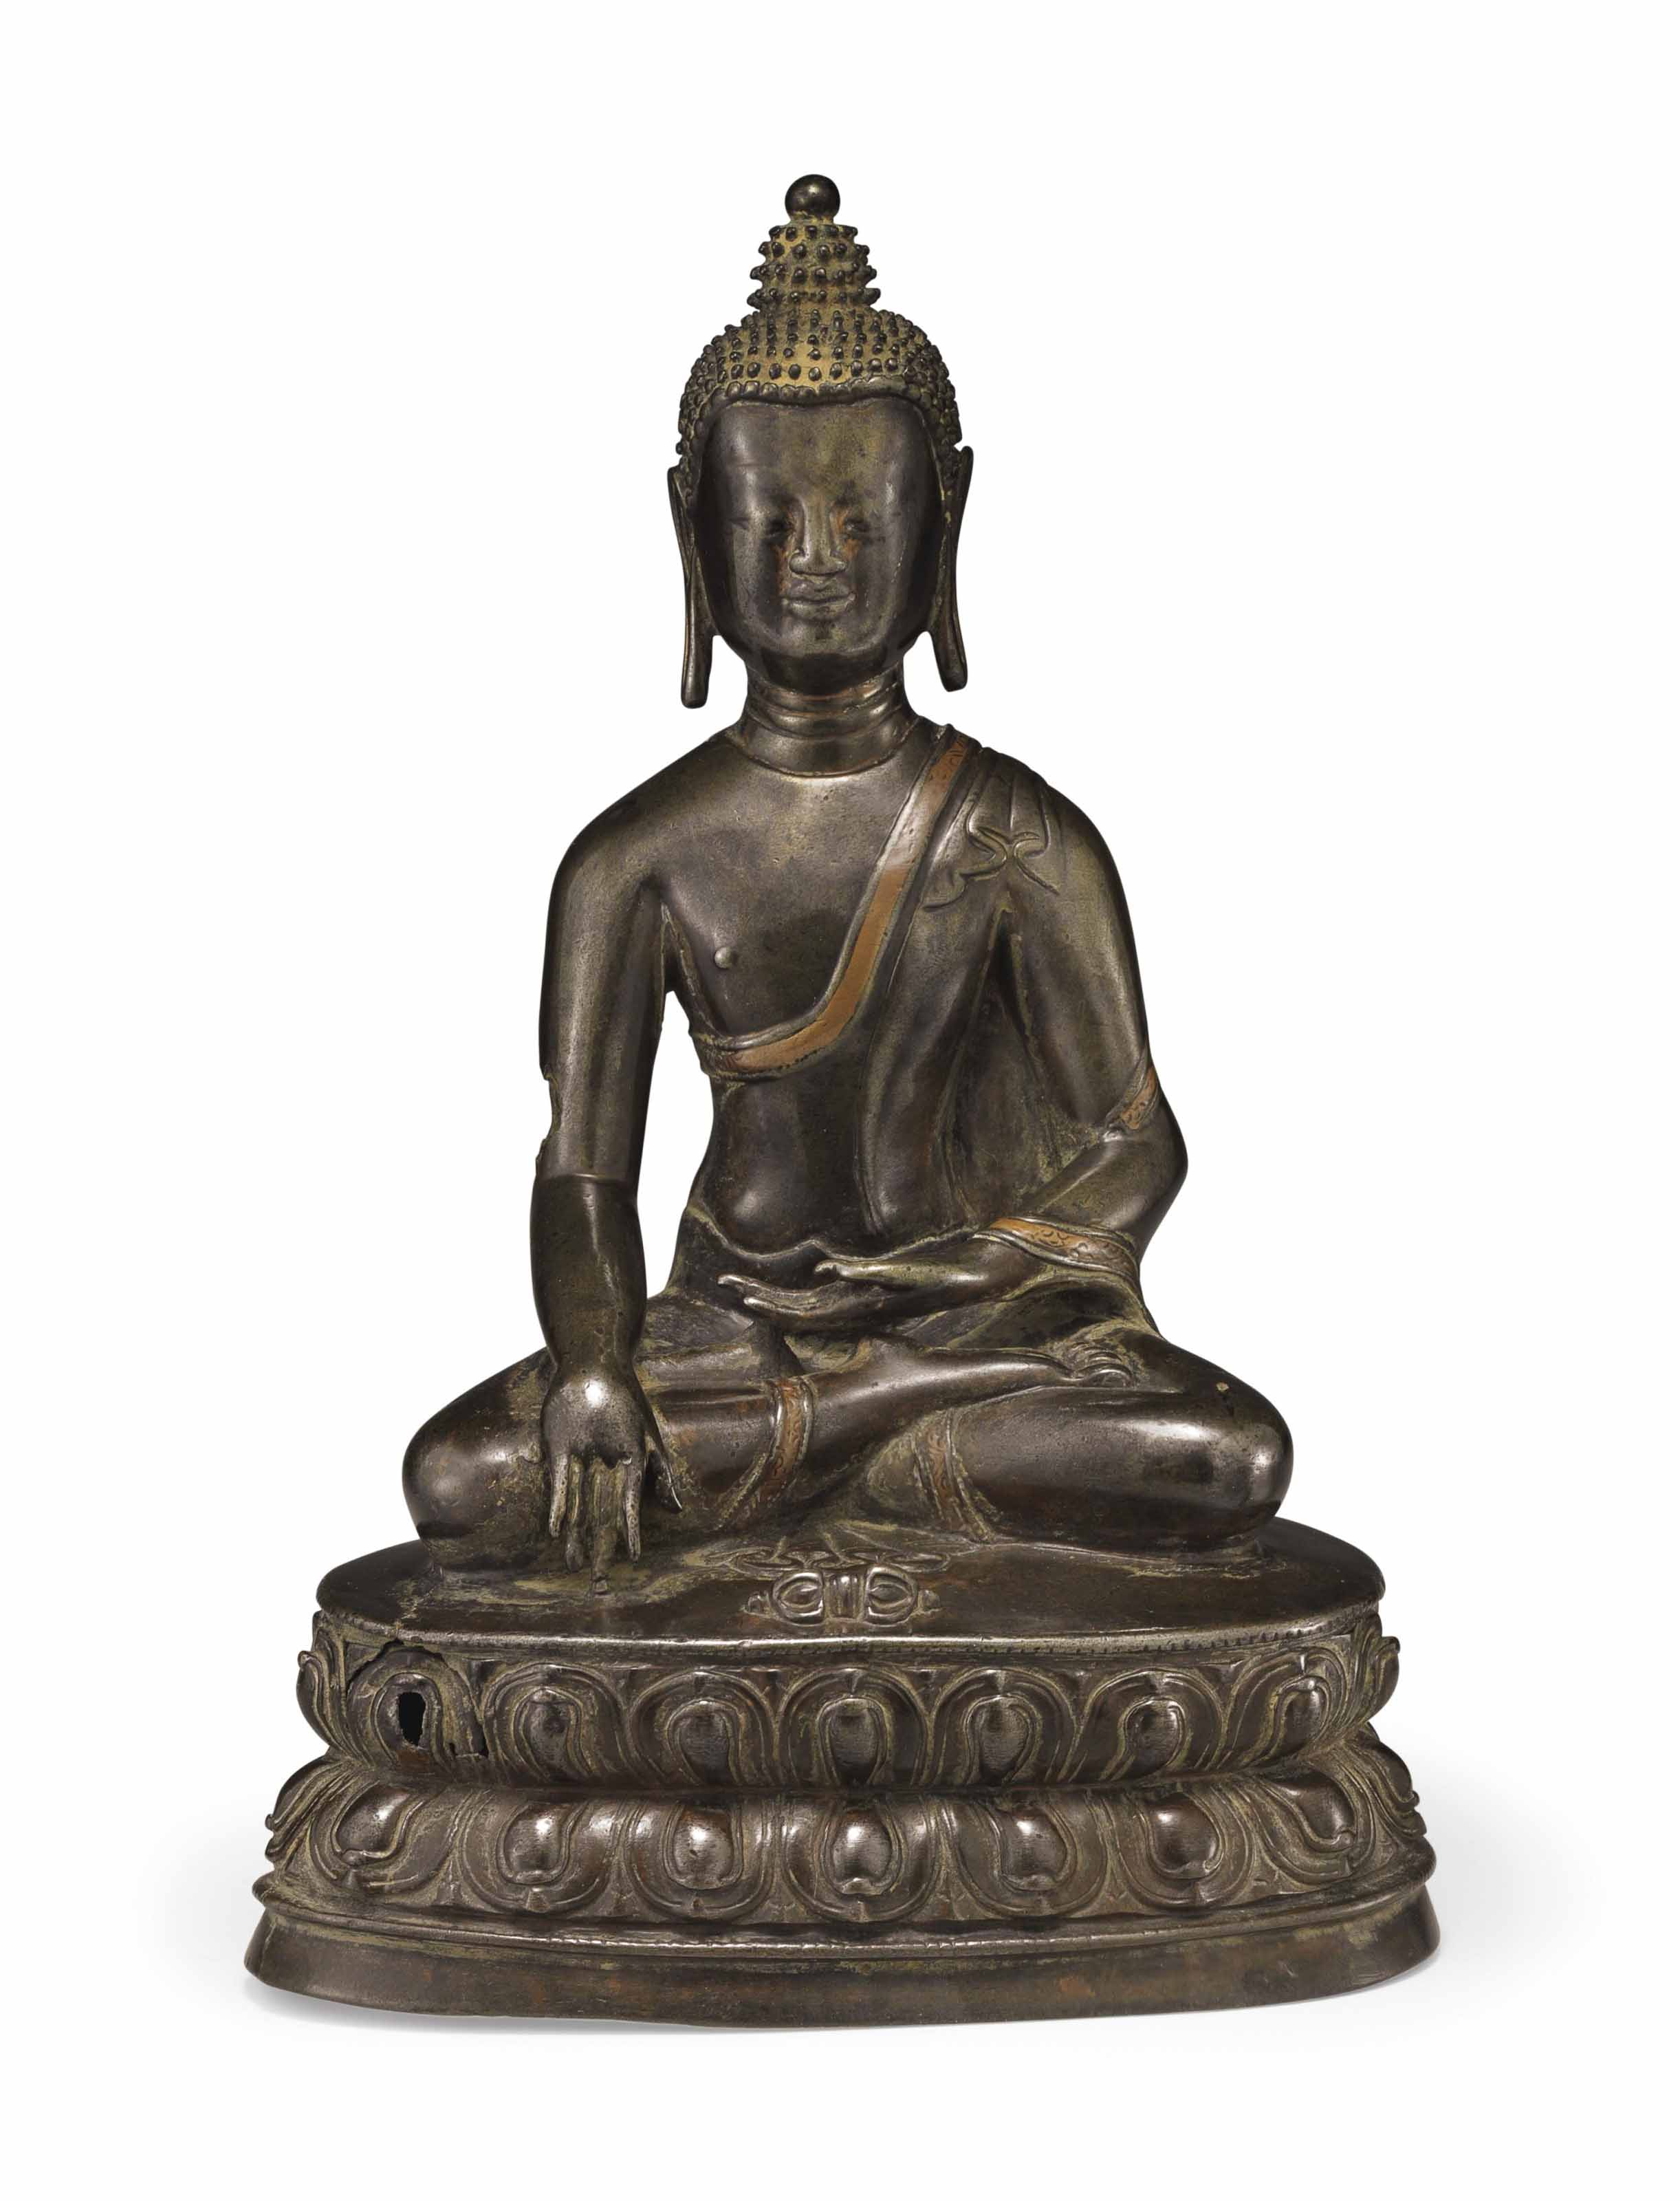 A TIBETAN COPPER-INLAID BRONZE